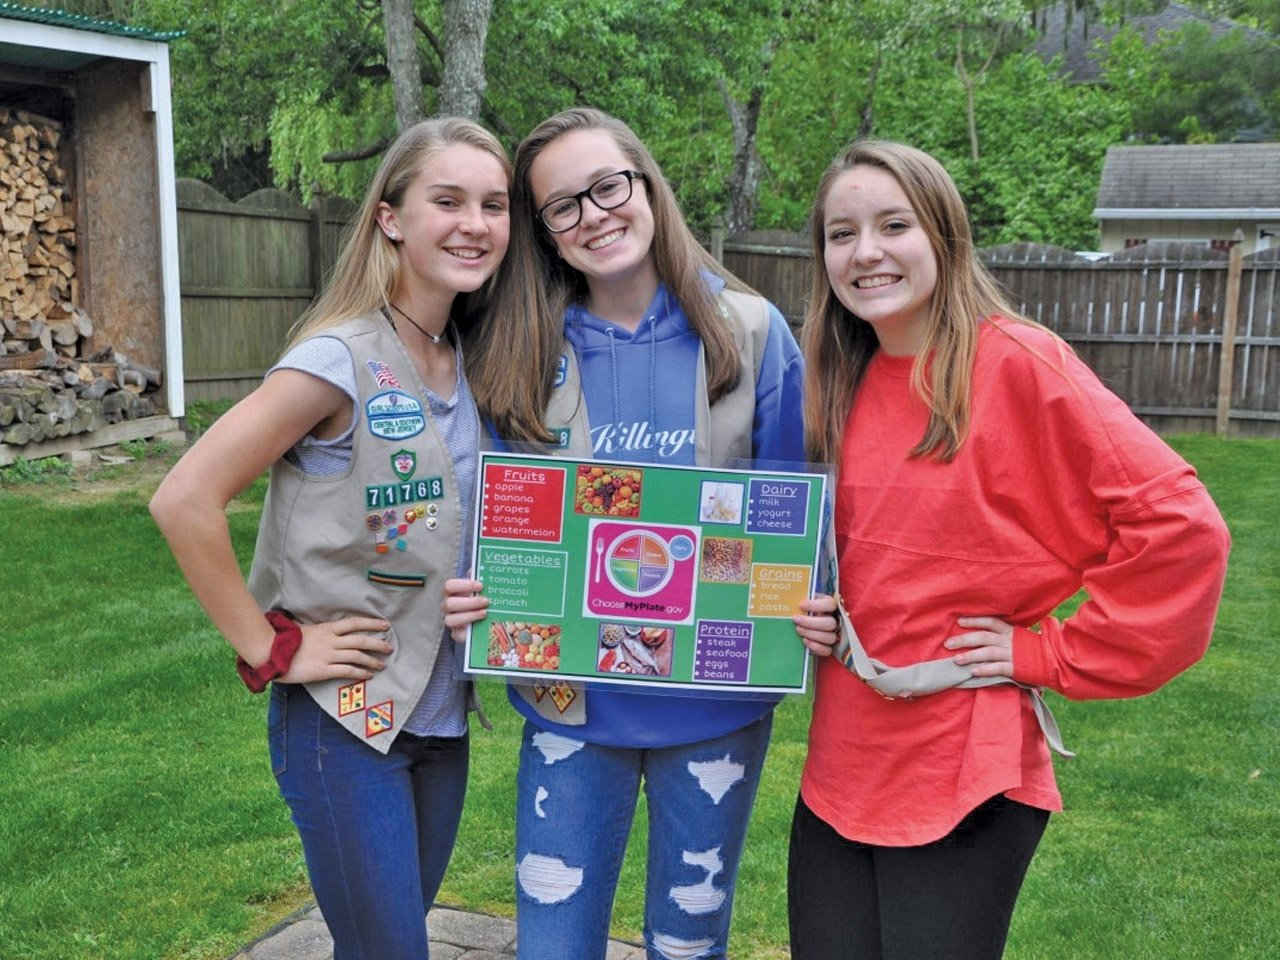 10 Awesome Girl Scouts Silver Award Ideas lawrence girl scouts teach the art of healthy food to earn silver award 2021